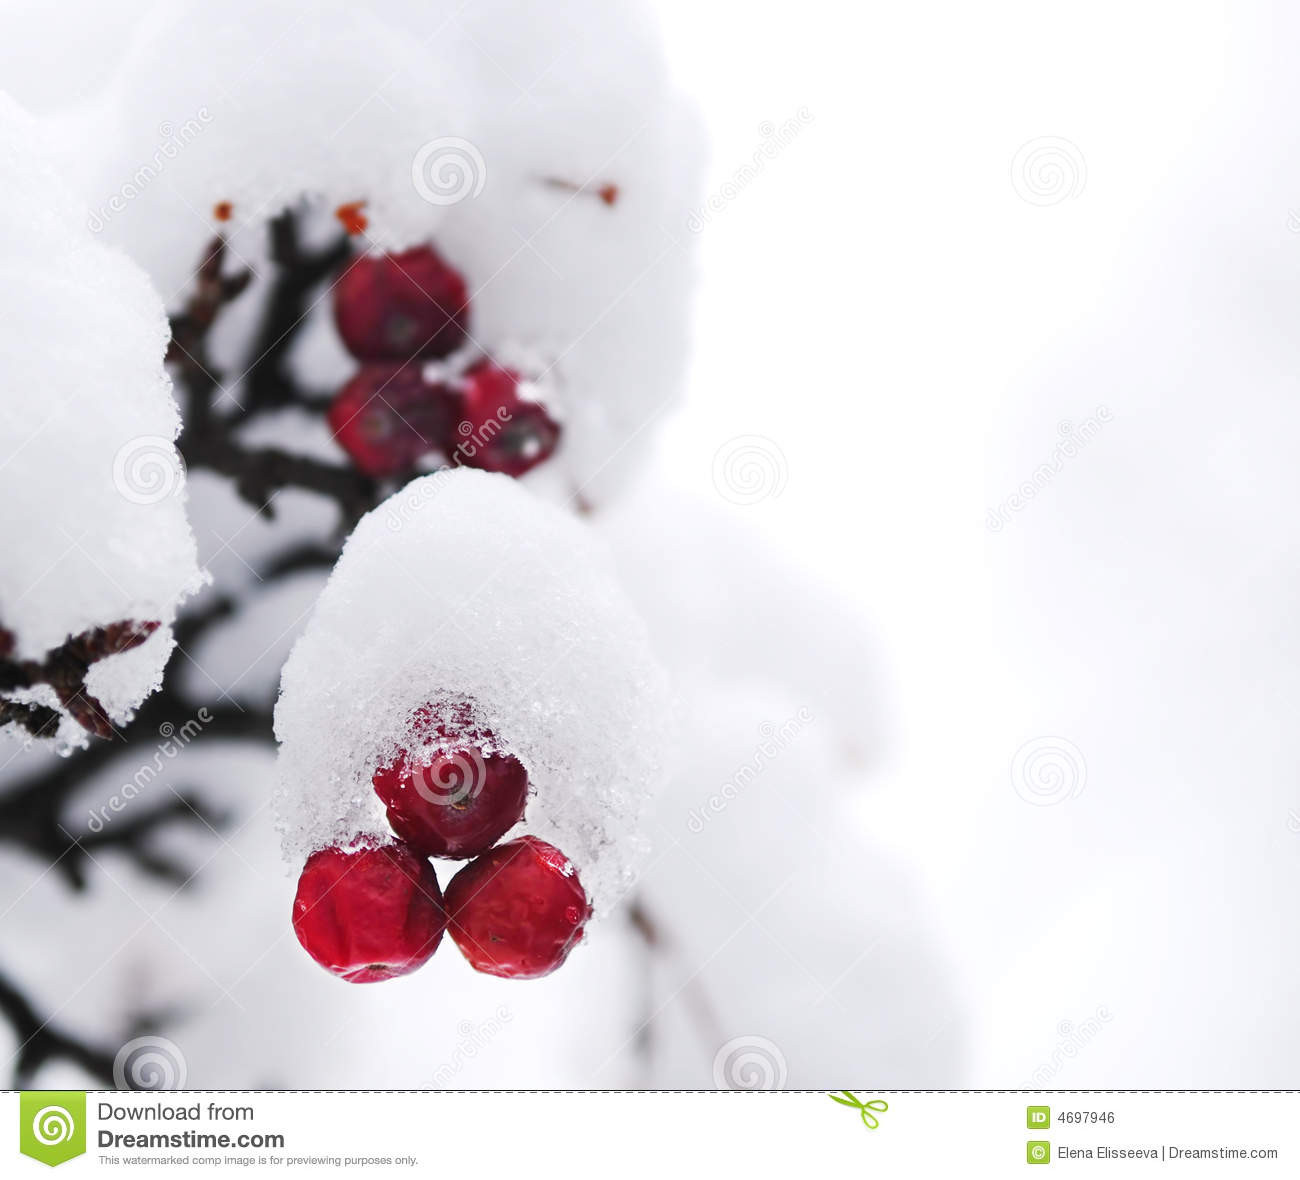 Winter Berries Royalty Free Stock Image   Image  4697946